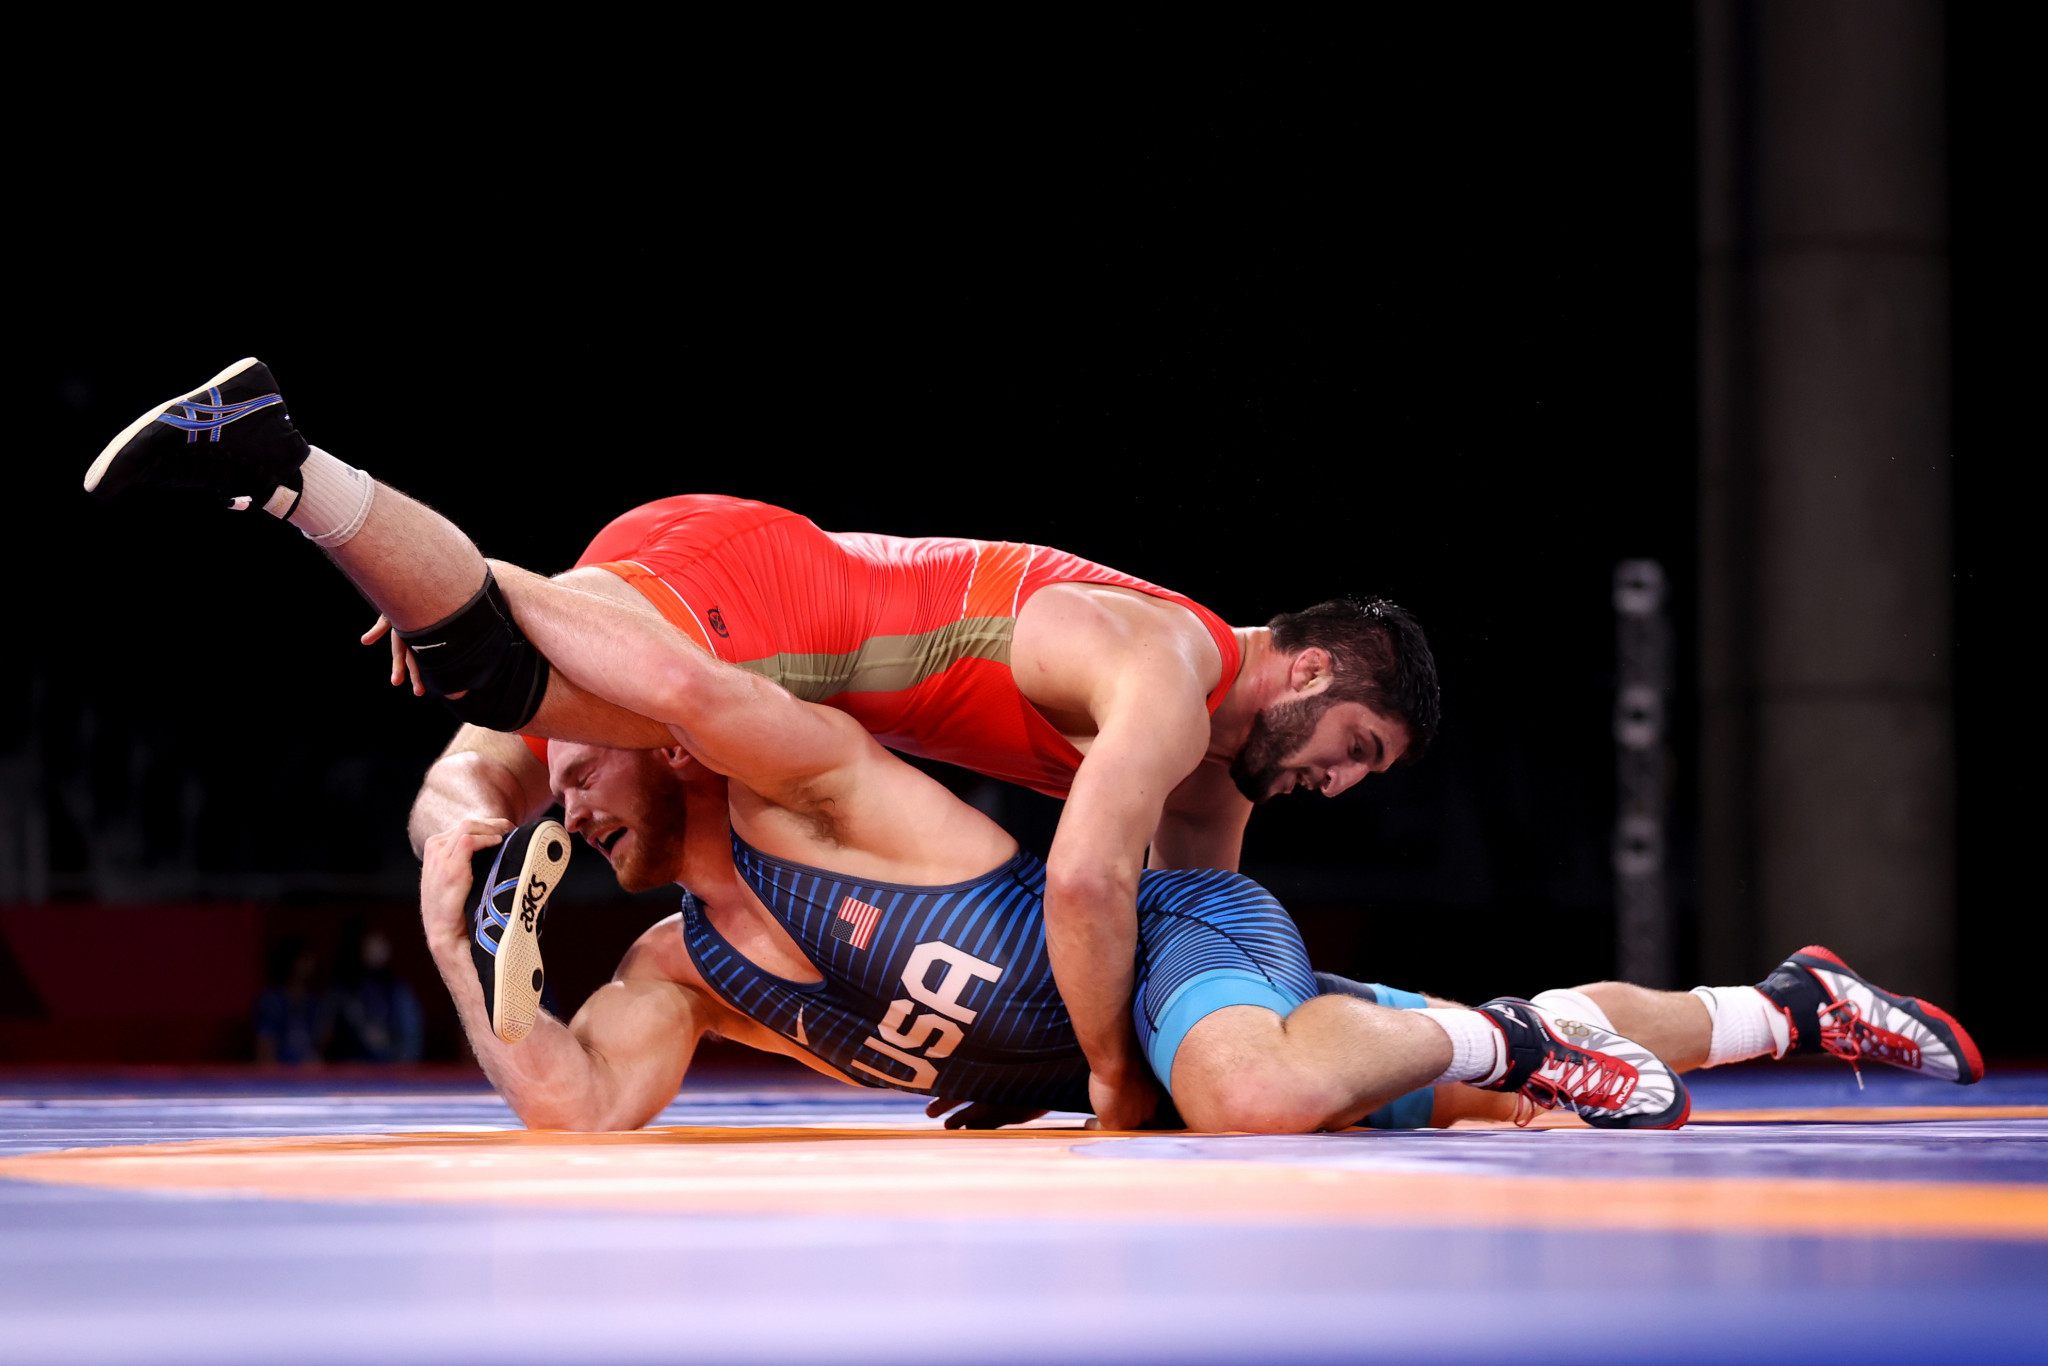 Sadulaev beat American Kyle Frederick Snyder 6-3 in the final of the Tokyo 2020 Olympics ©Getty Images